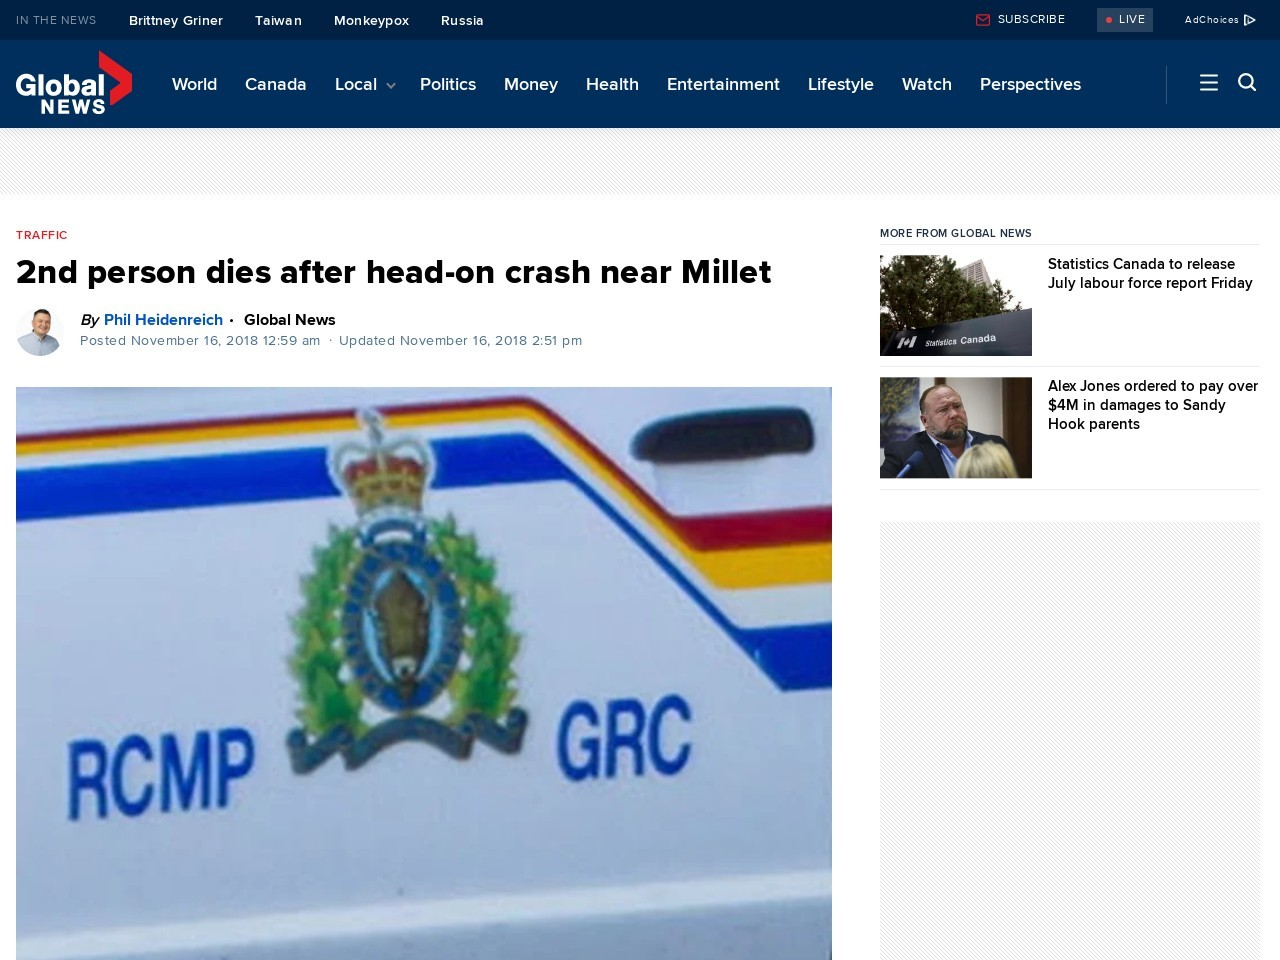 1 person dead, 2 taken to hospital after head-on crash near Millet